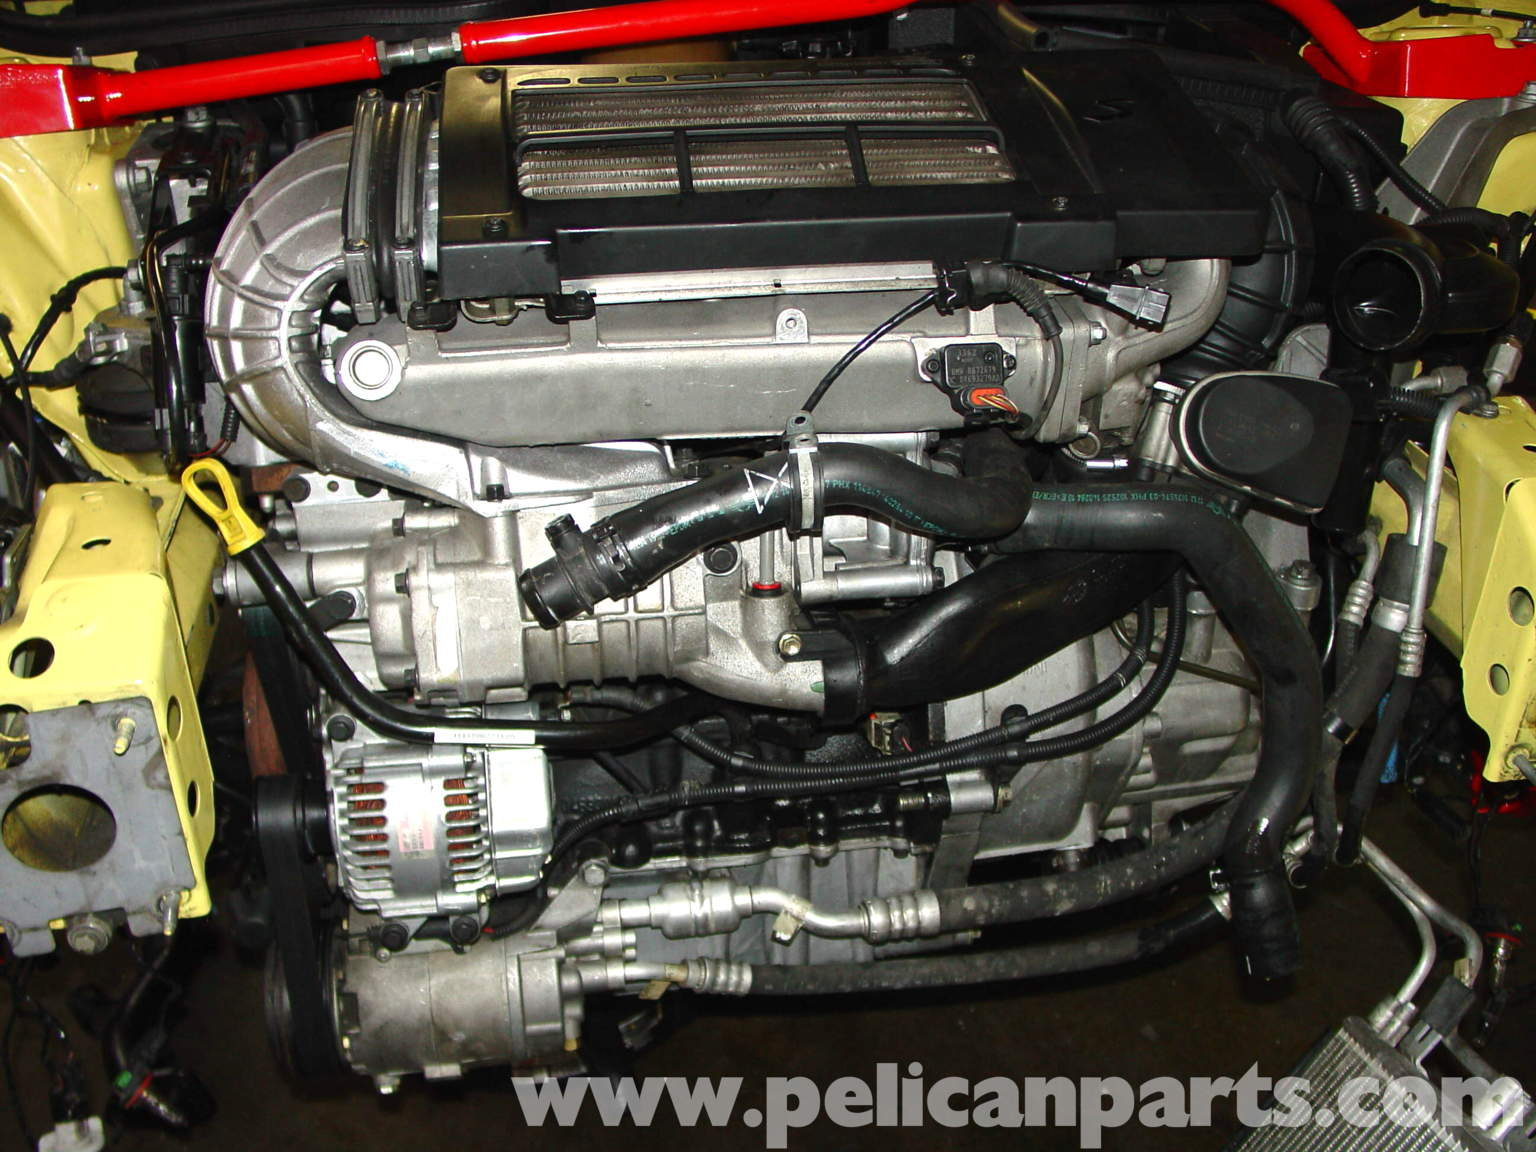 2010 Mini Cooper S Wiring Diagram All Image About Wiring Diagram And